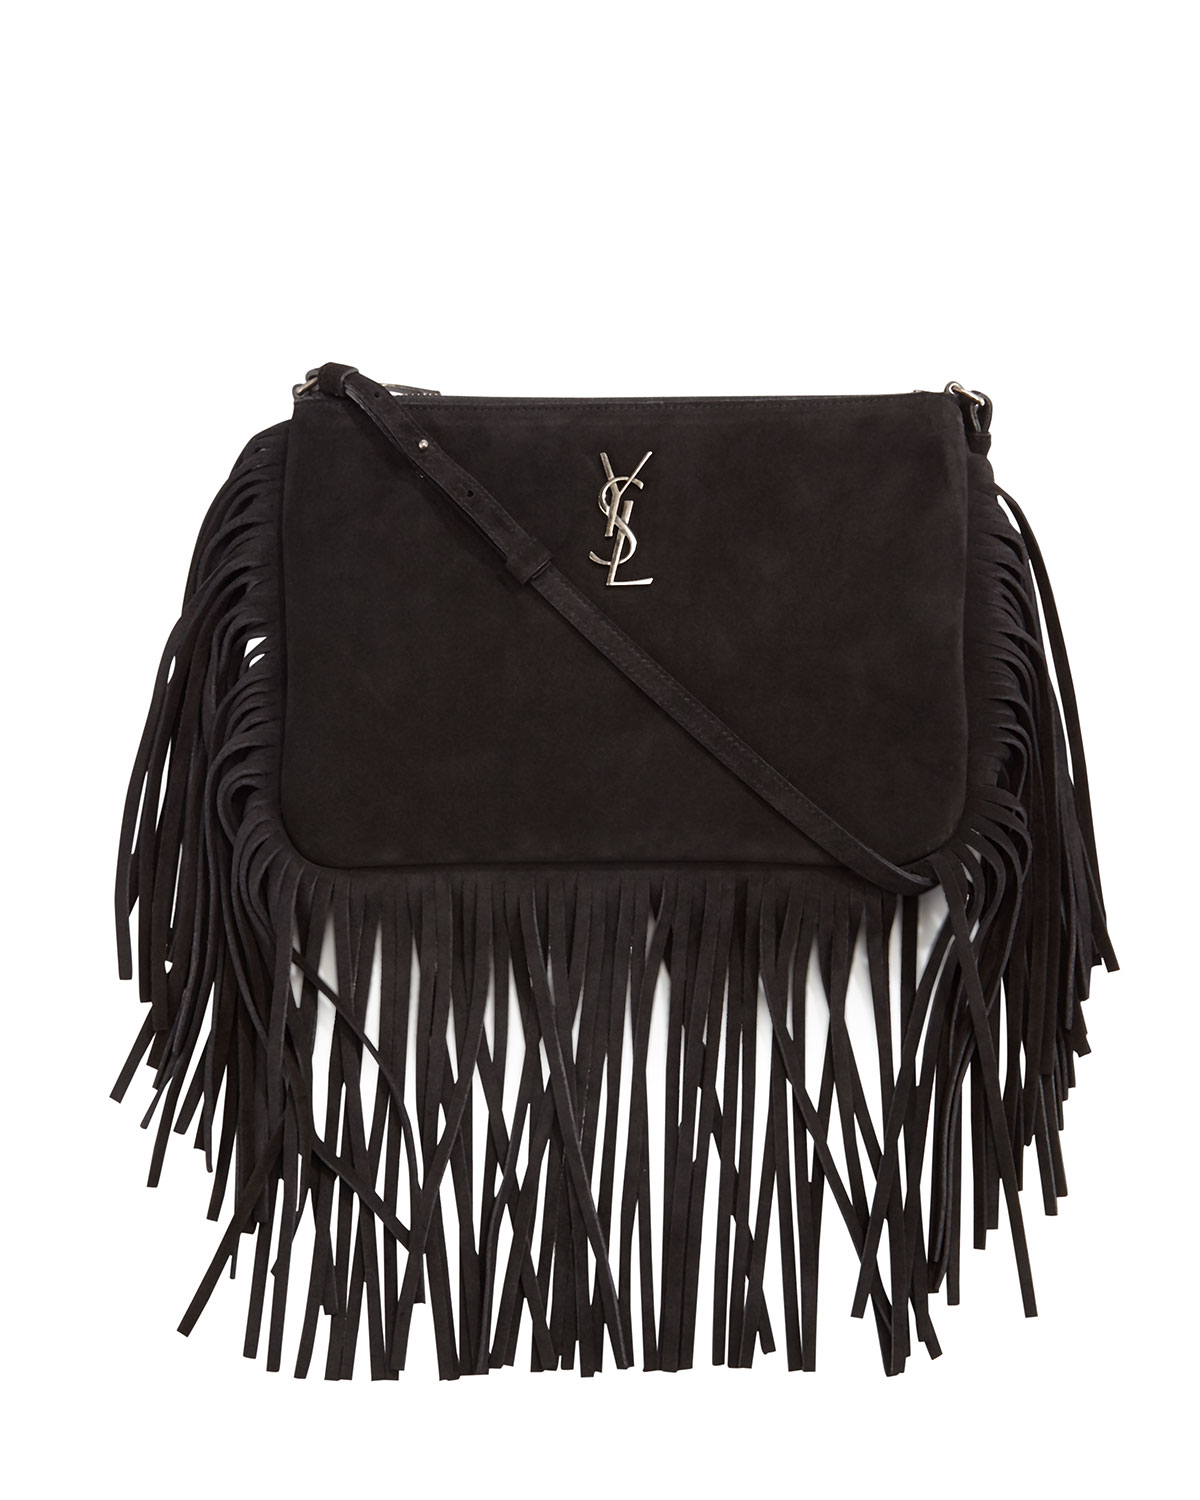 54617aab8a62 ... ysl shoulder tassel bag .